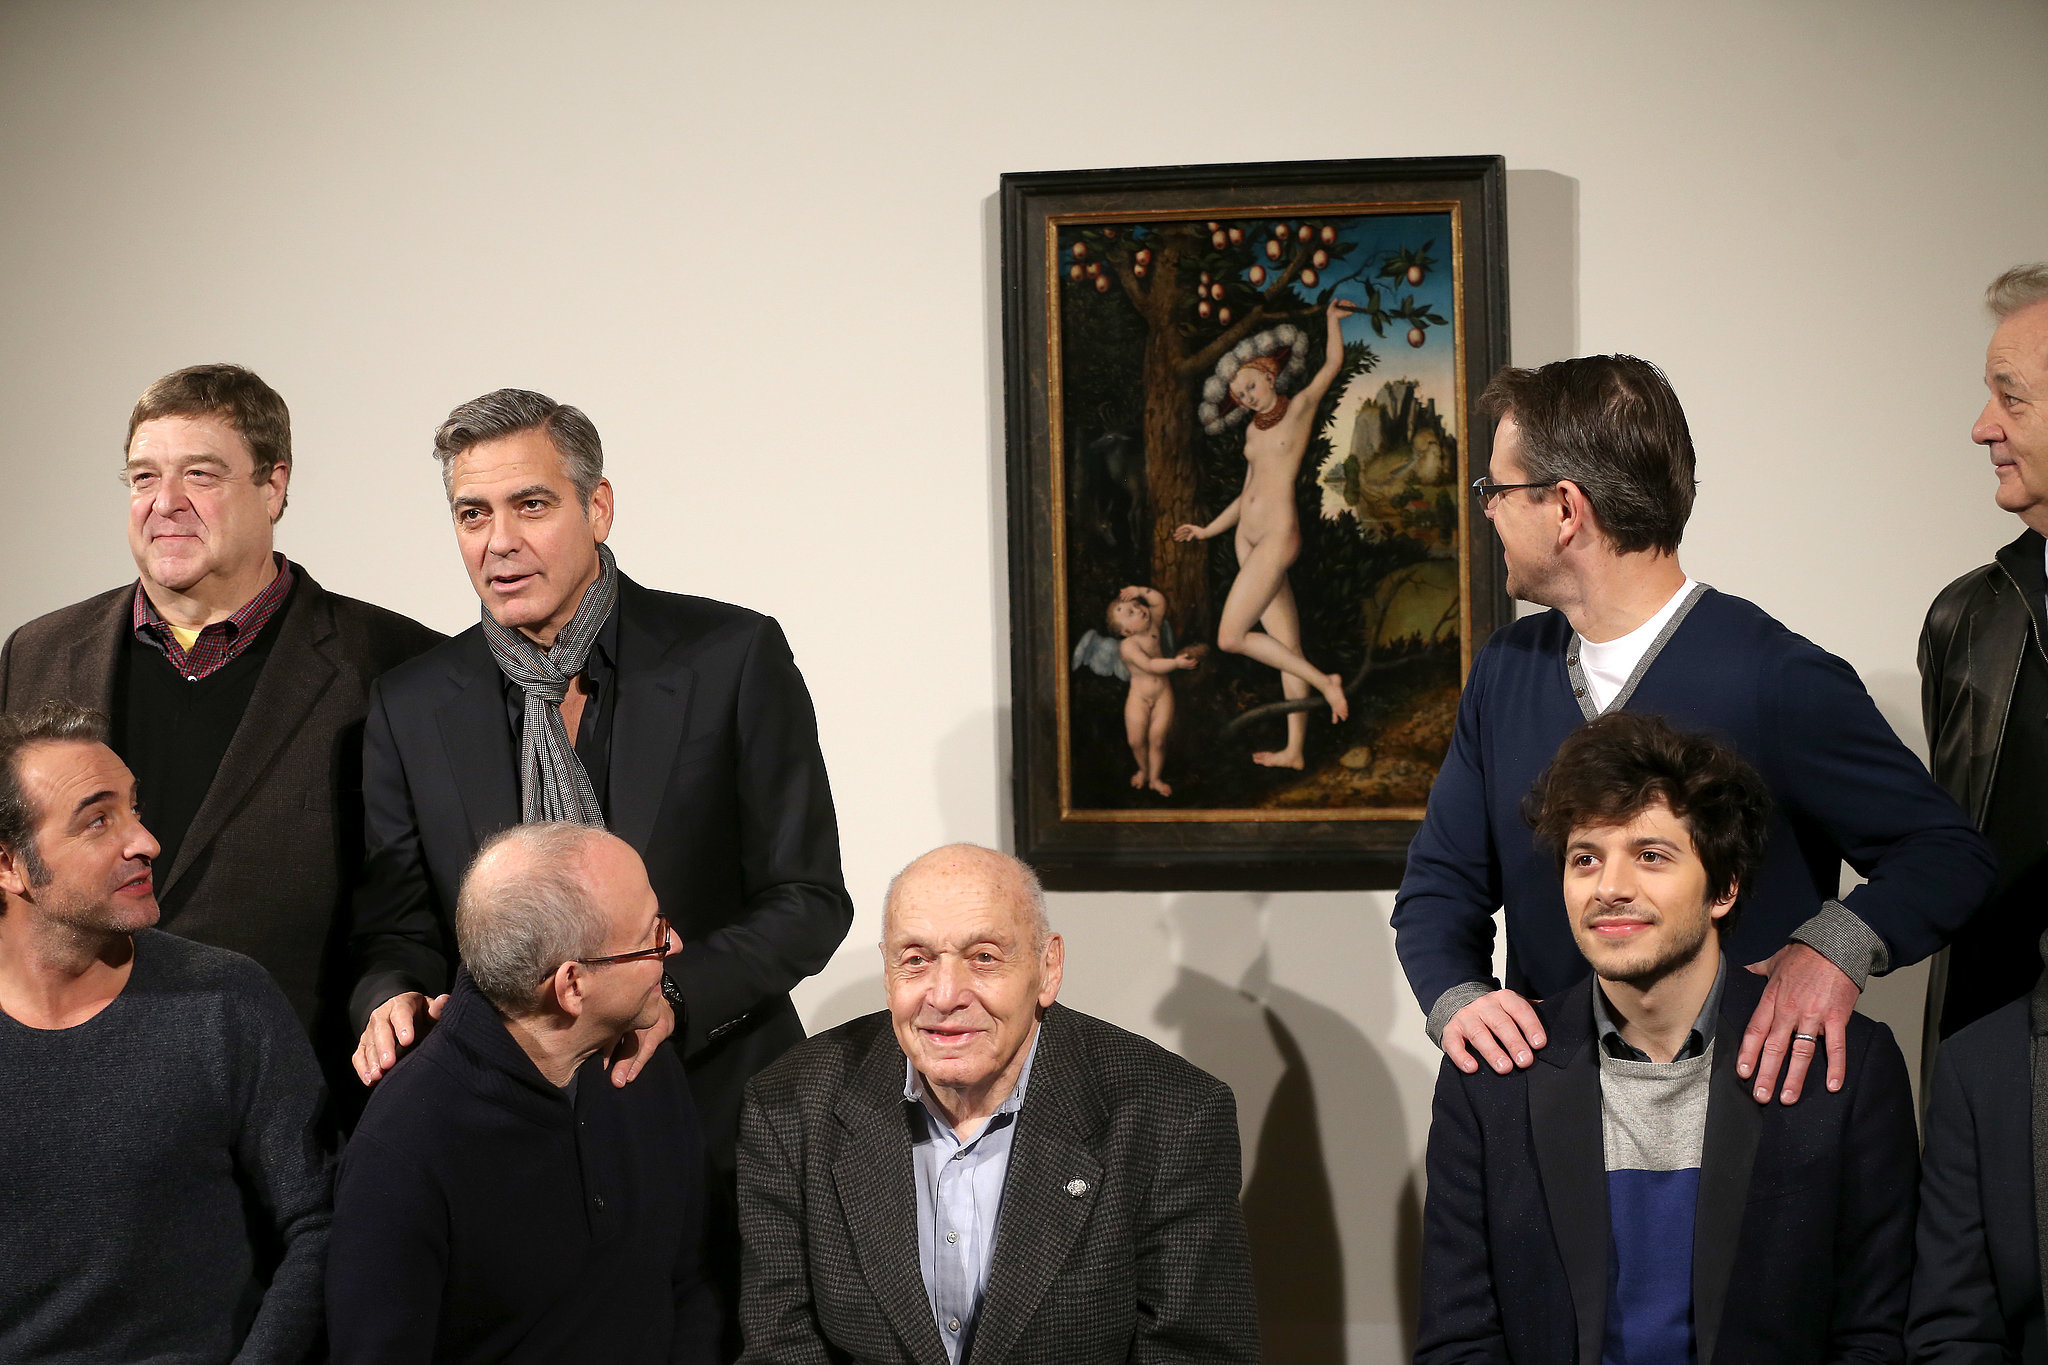 Once the guys got to London, all bets were off. They couldn't even keep it together in front of a nude painting.